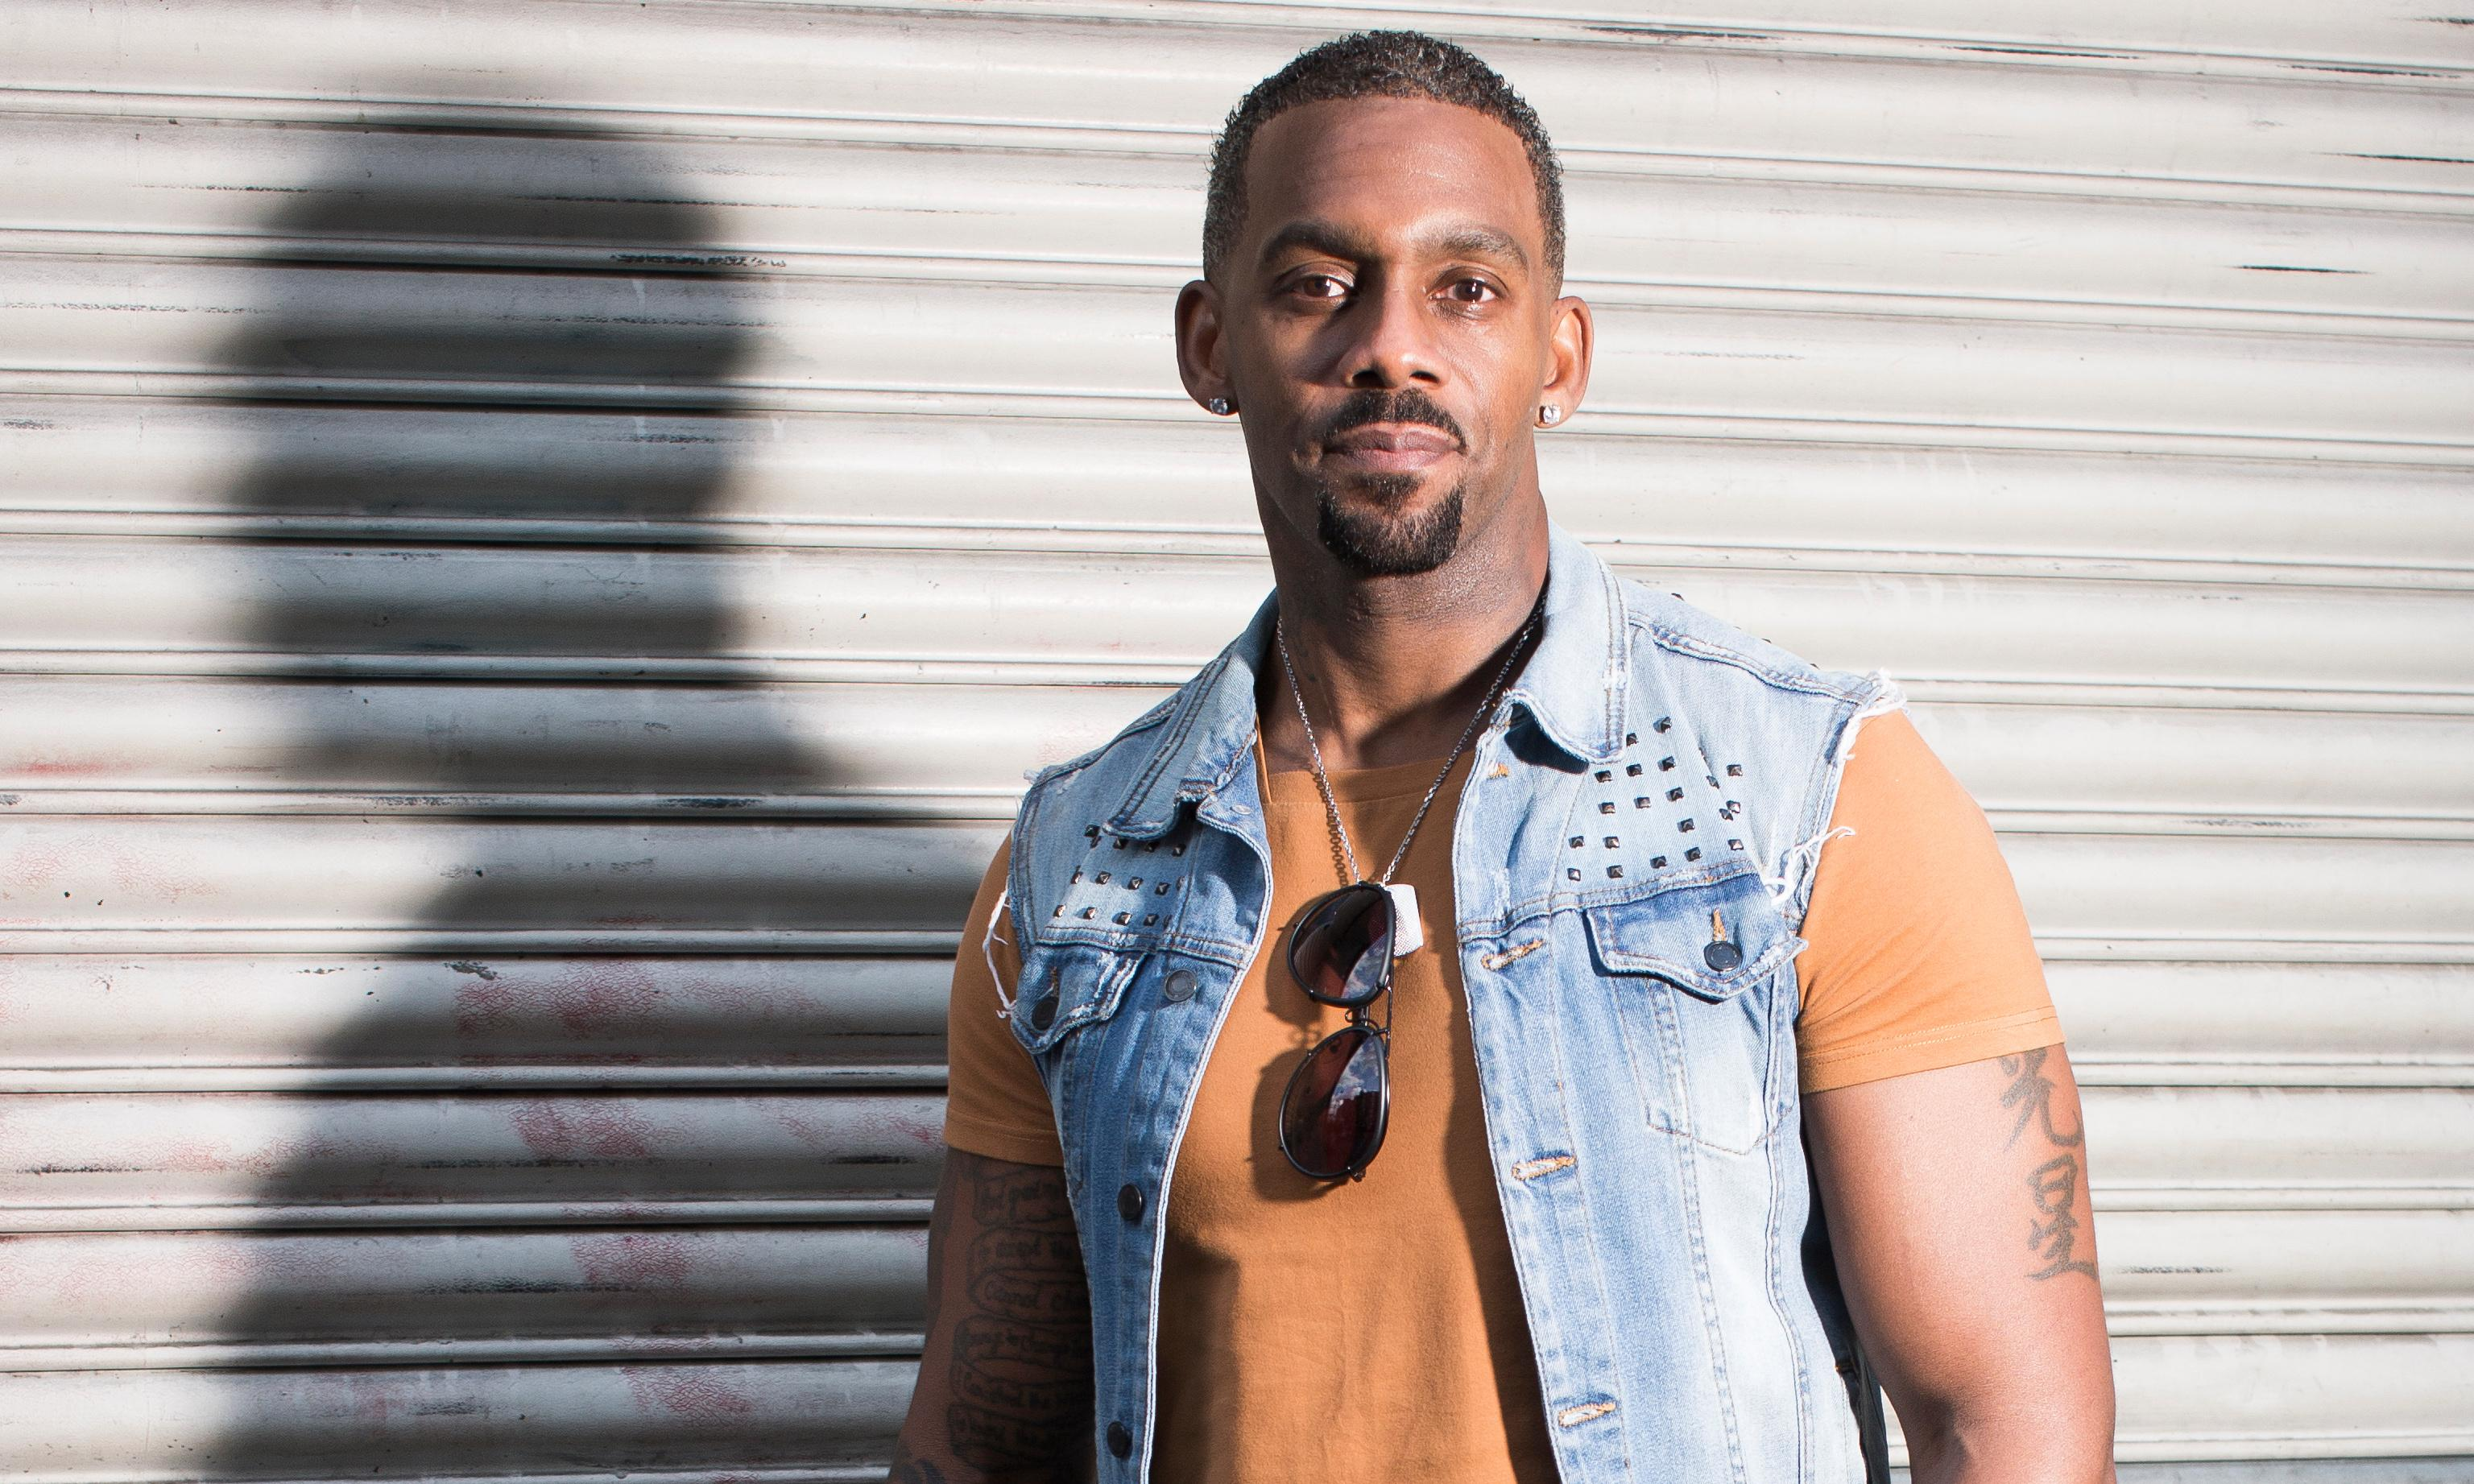 Richard Blackwood: 'I was in a bubble, thinking I had the Midas touch'